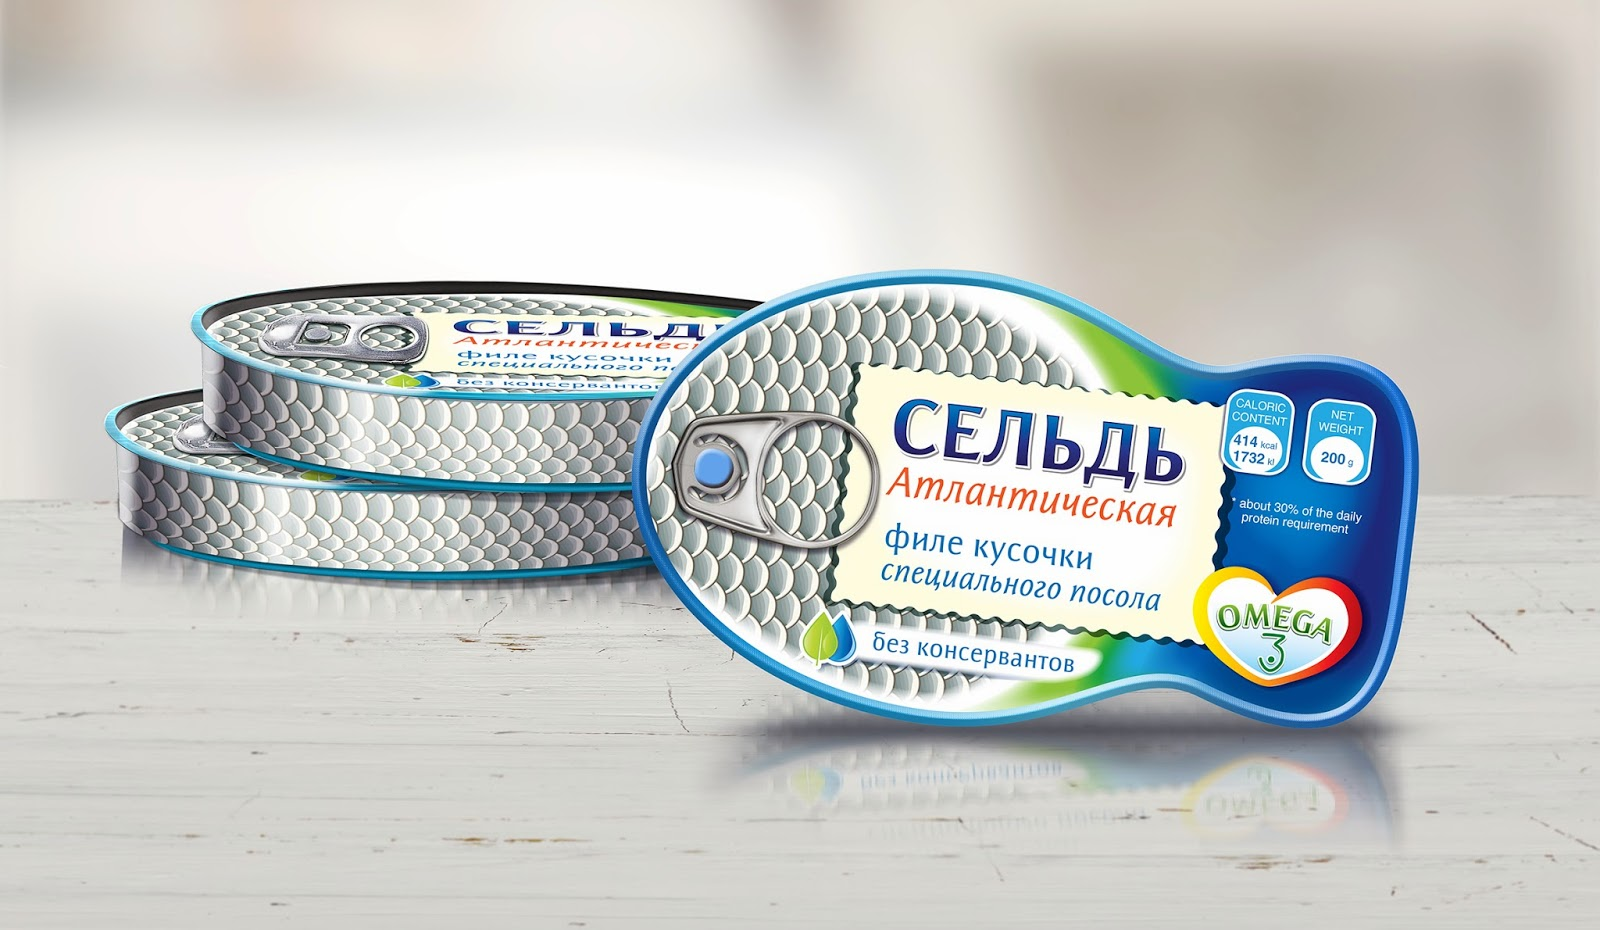 Canned Fish Concept On Packaging Of The World Creative